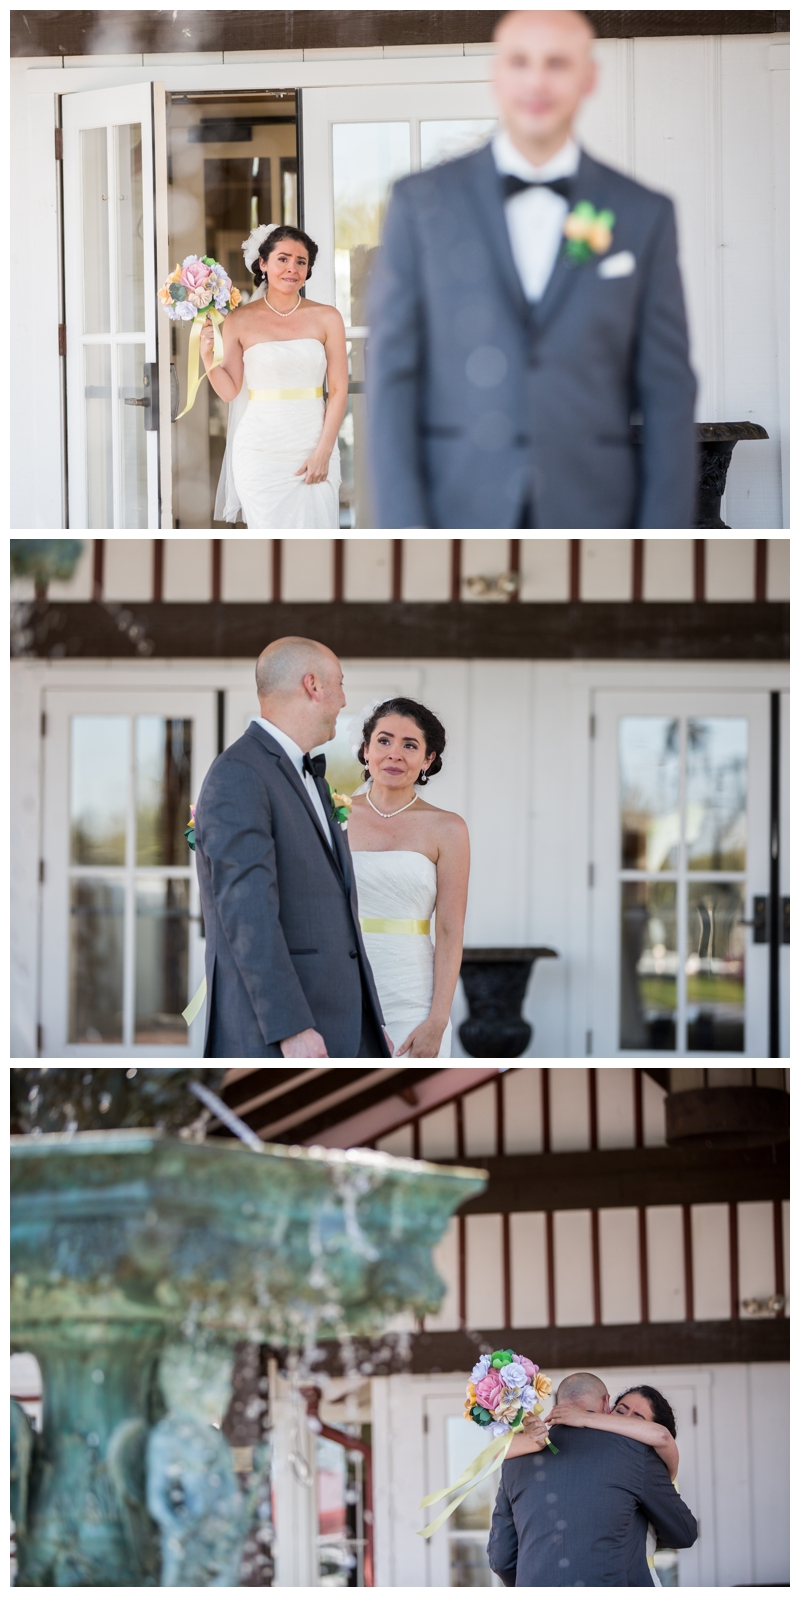 Such an emotional First Look for Marisa and David.